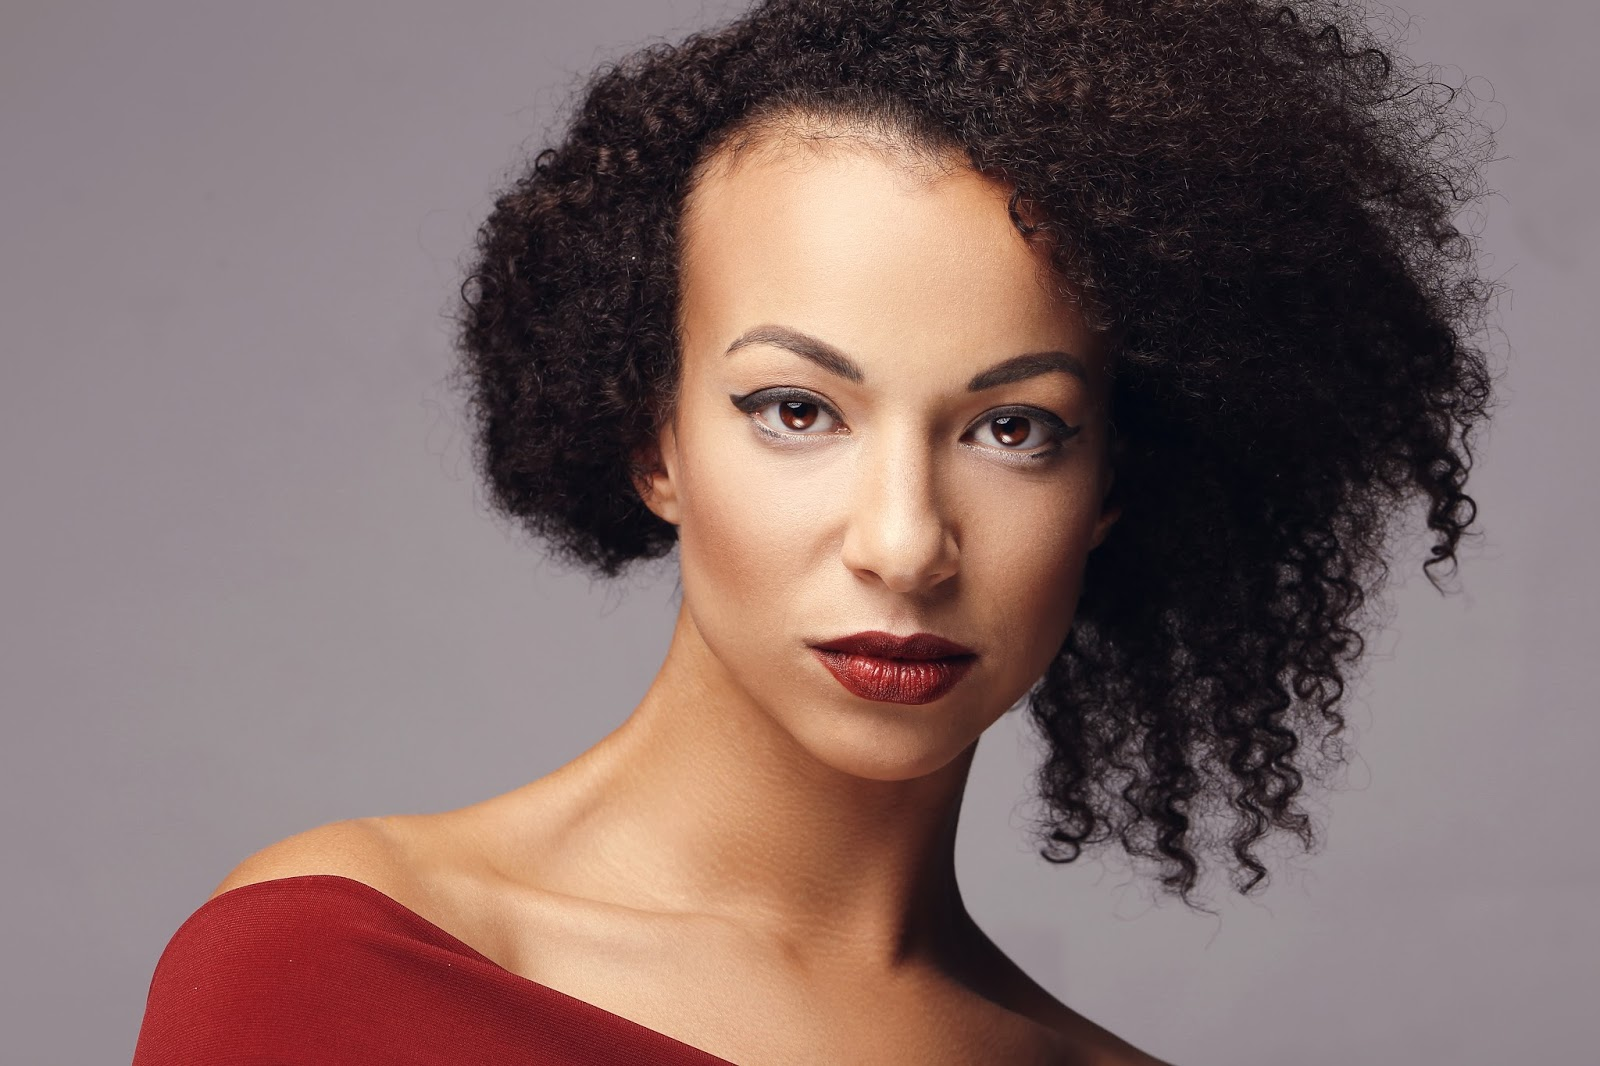 Thinning Hair & Hereditary Hair Loss: Concerns For Black Women